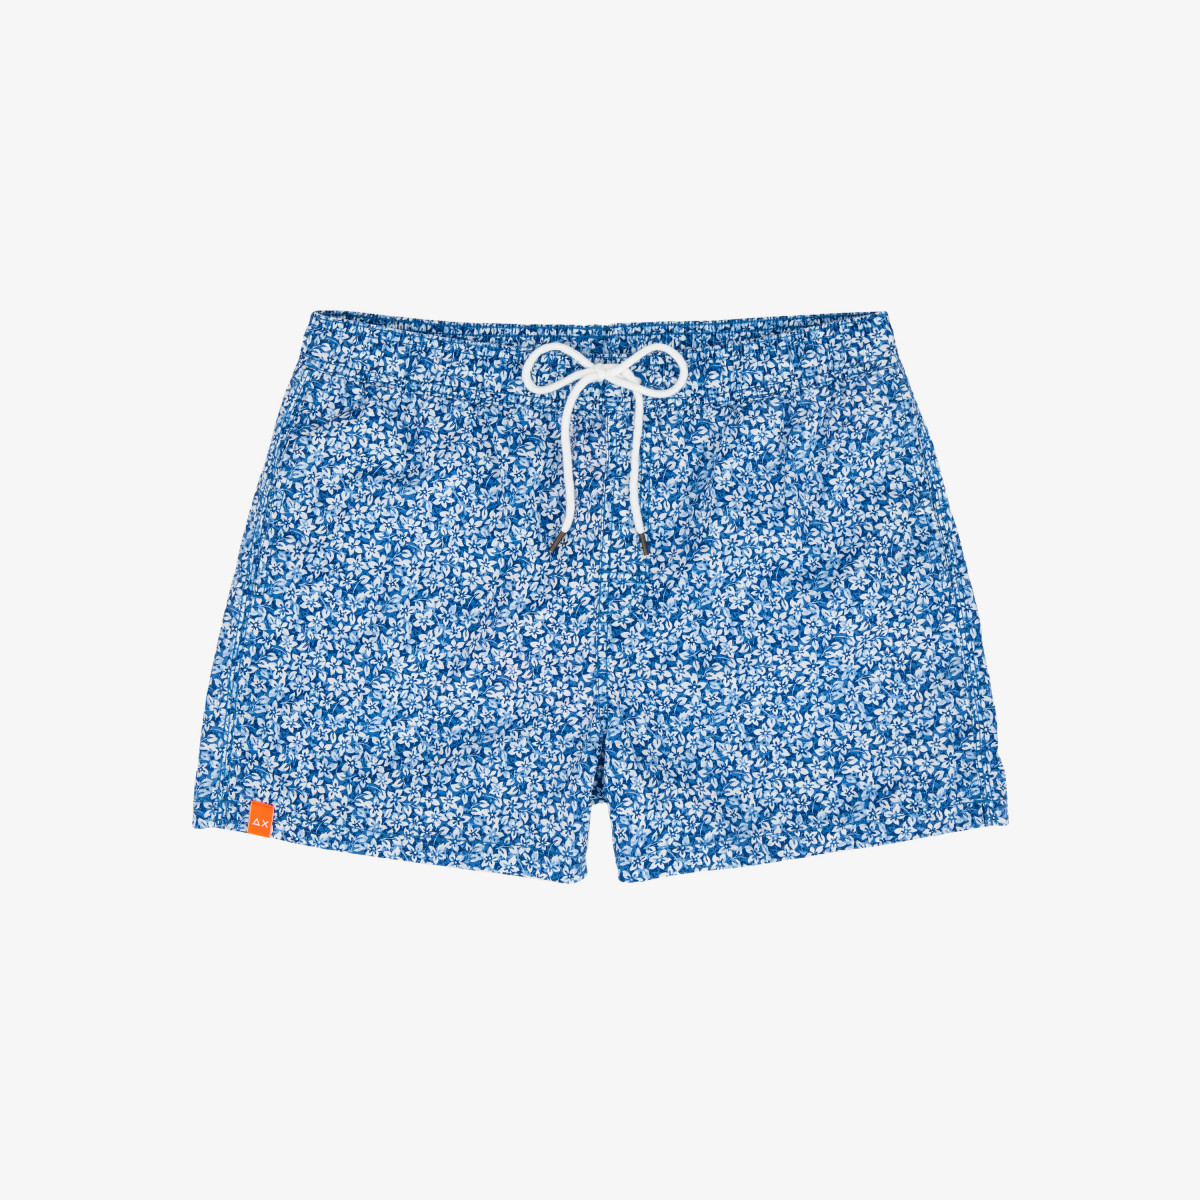 SWIM PANT MICRO PRINT BLUE/WHITE